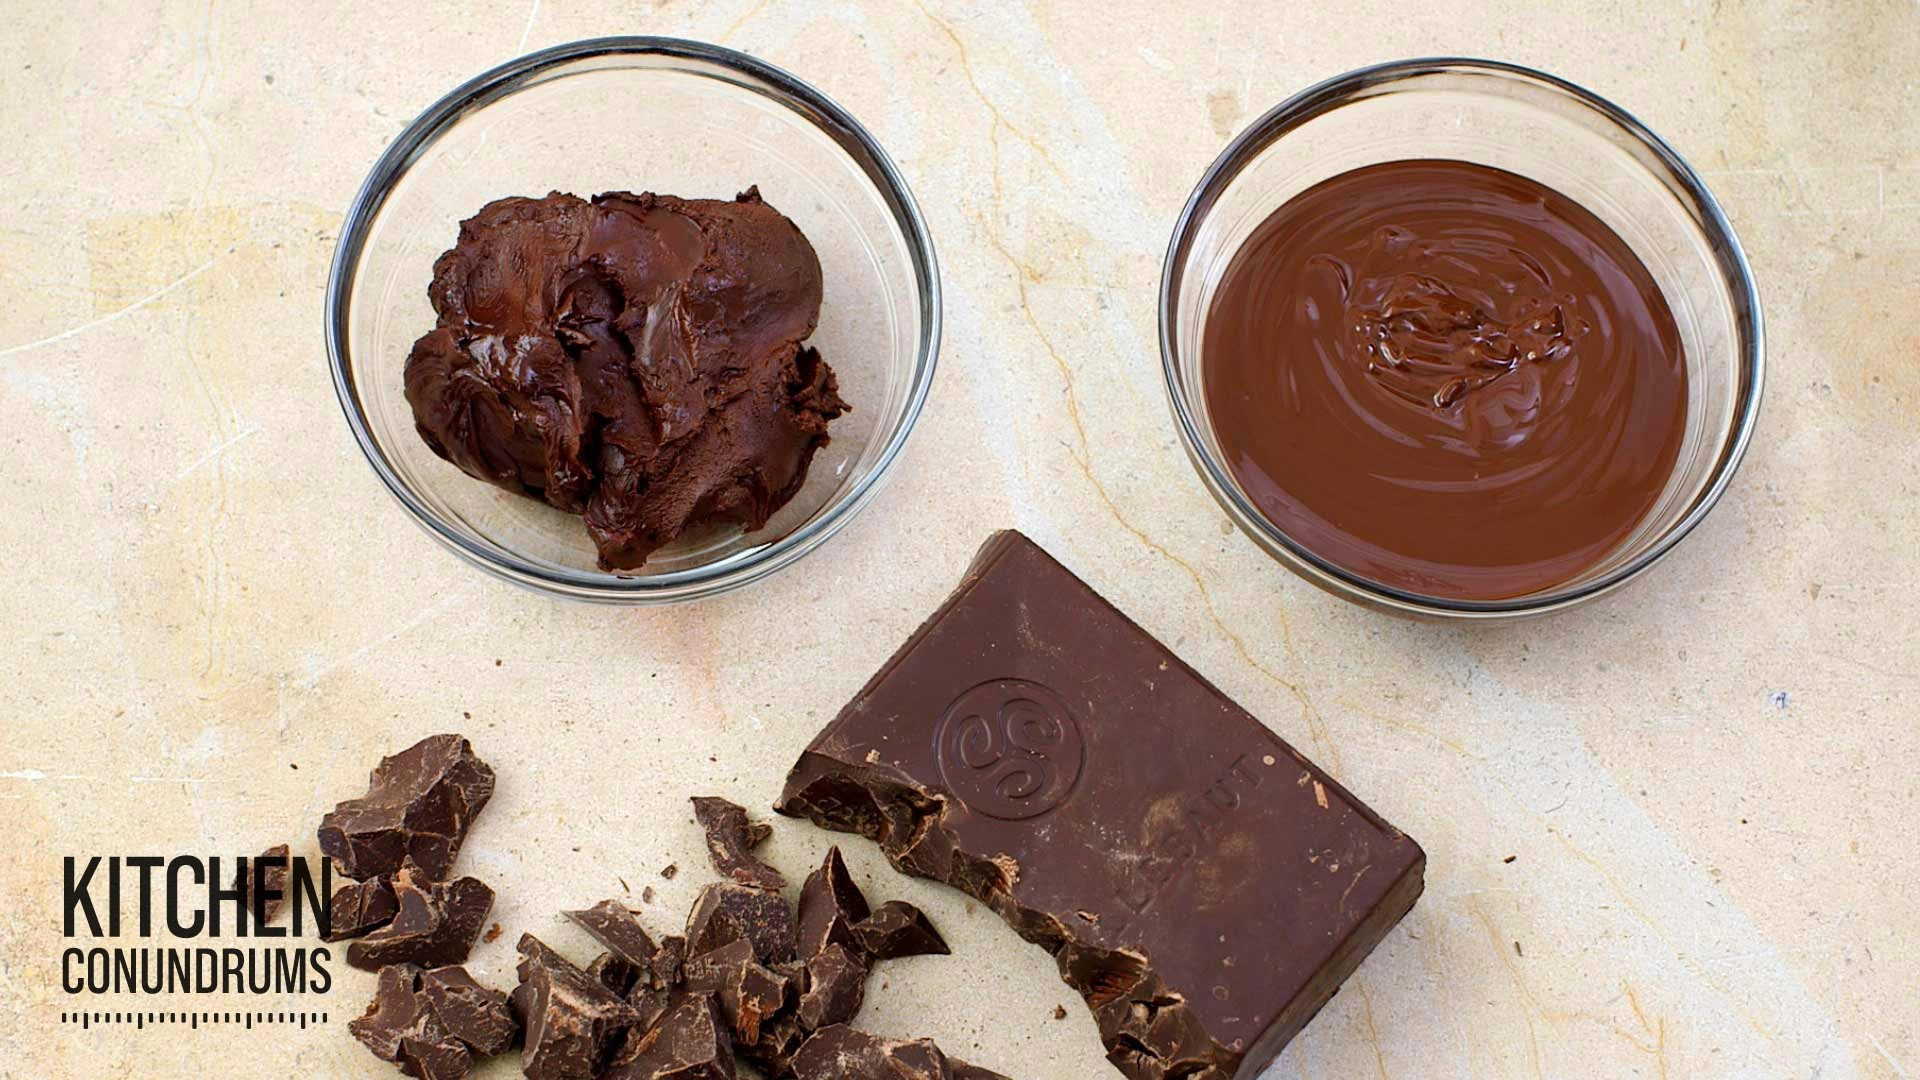 How to Melt Chocolate, the Right Way! - Kitchen Conundrums with Thomas Joseph